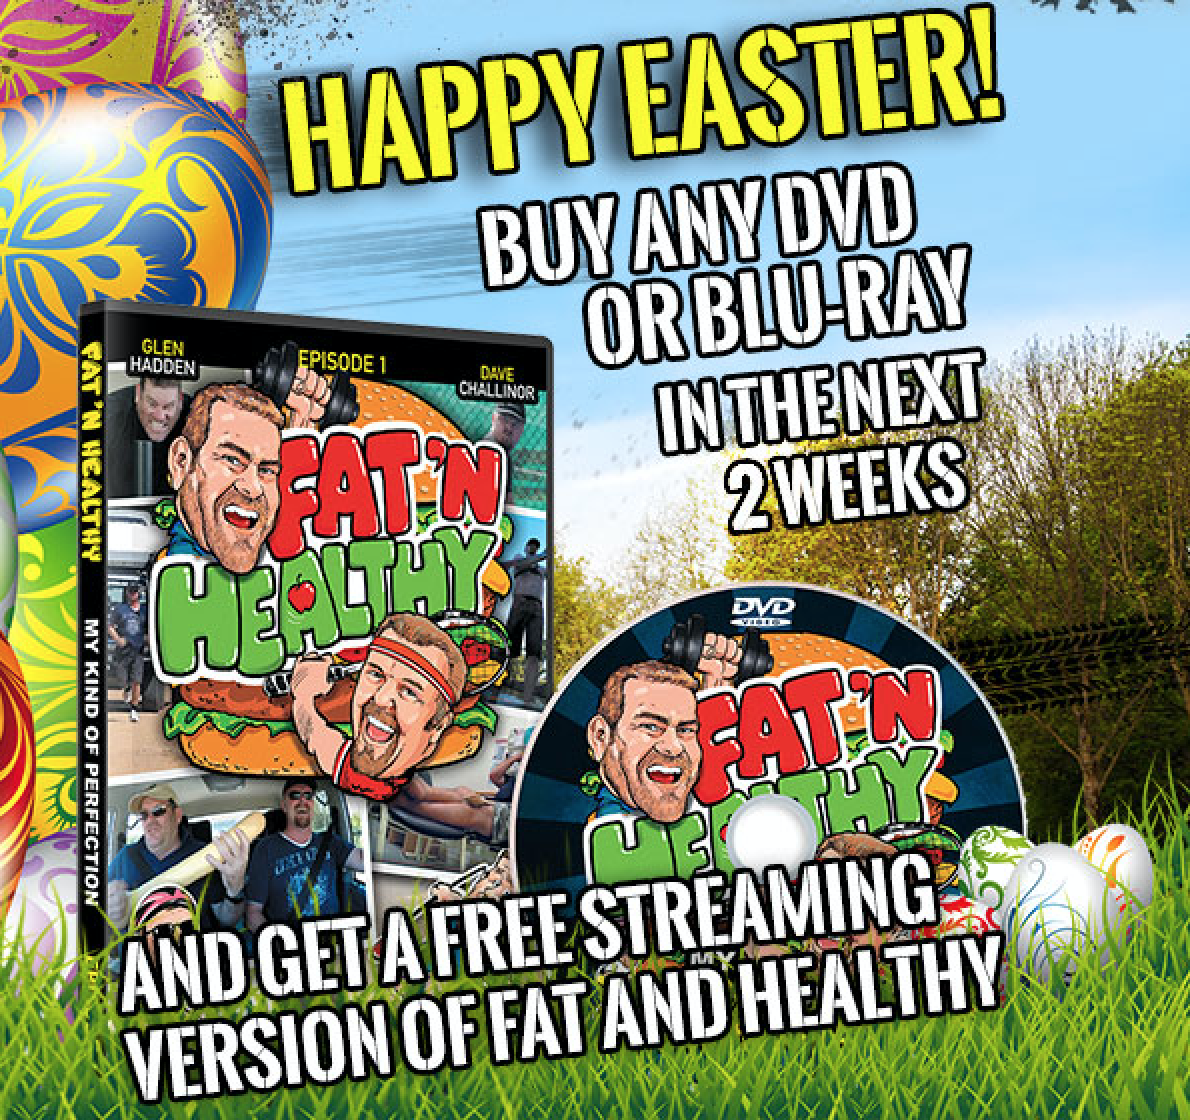 STREAM_FAT_AND_HEALTHY